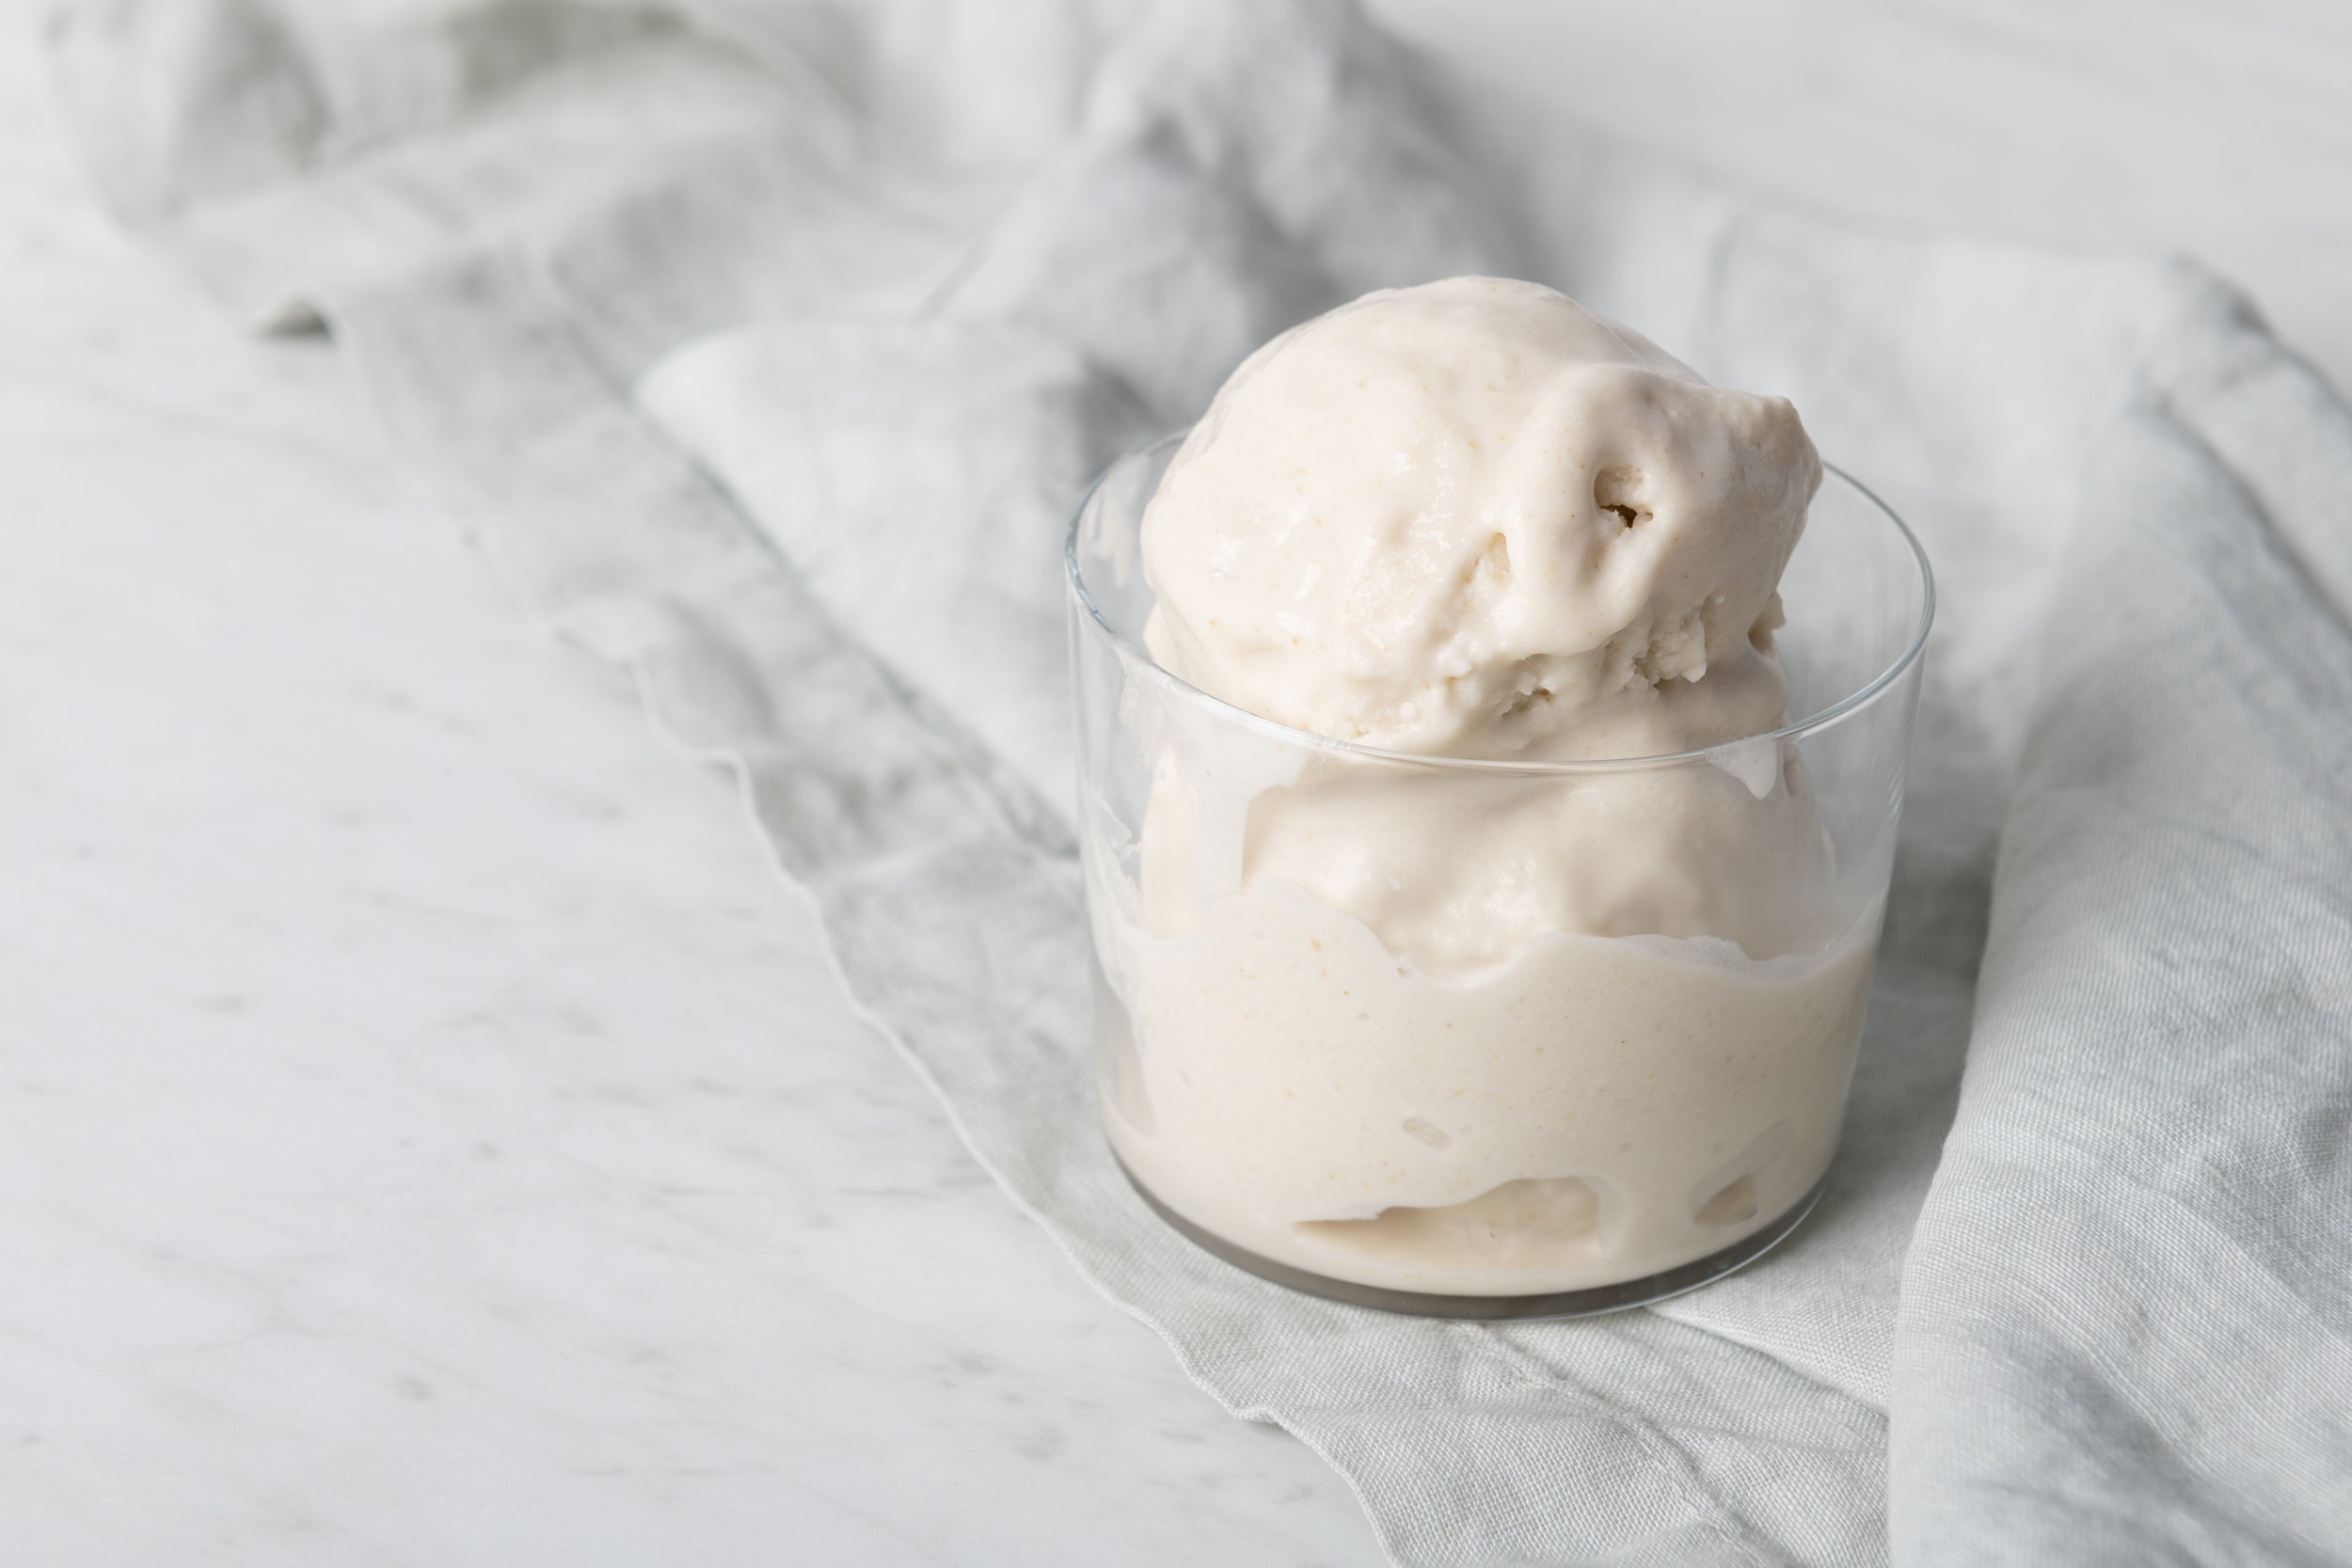 WHITE CHOCOLATE COCONUT CORIANDER SORBET (DAIRY-FREE)<br><strong>Combining sweet white chocolate with the smoky, floral notes of coriander.</strong>